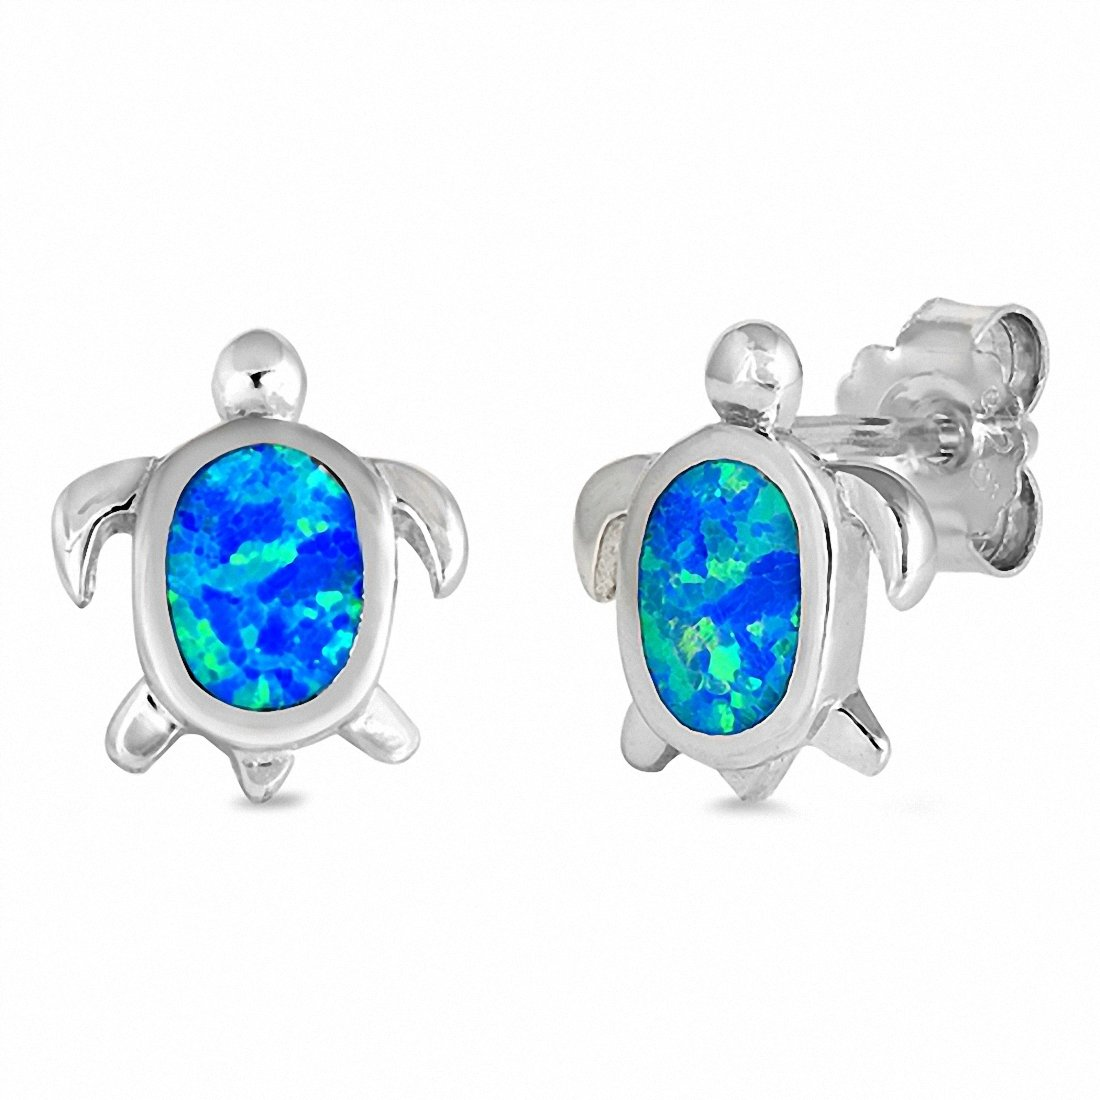 Turlte Stud Earrings Created Opal 925 Sterling Silver Choose Color